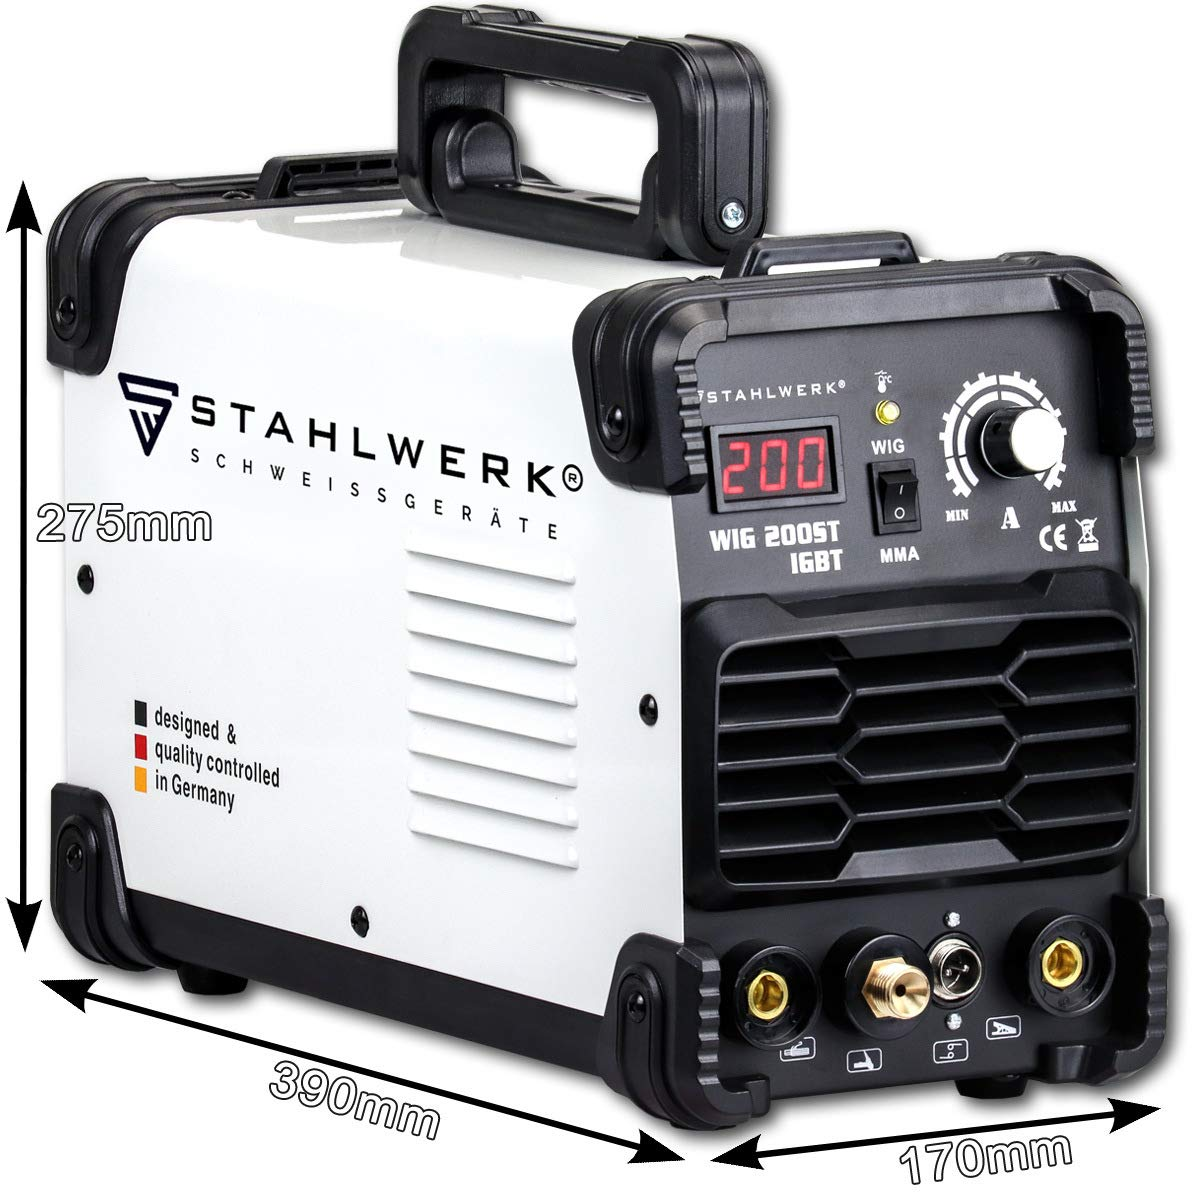 MMA//ARC inverter welder with 200 Ampere,5 years warranty Welding of steel STAHLWERK DC TIG 200 ST IGBT stainless steel and more Combined TIG